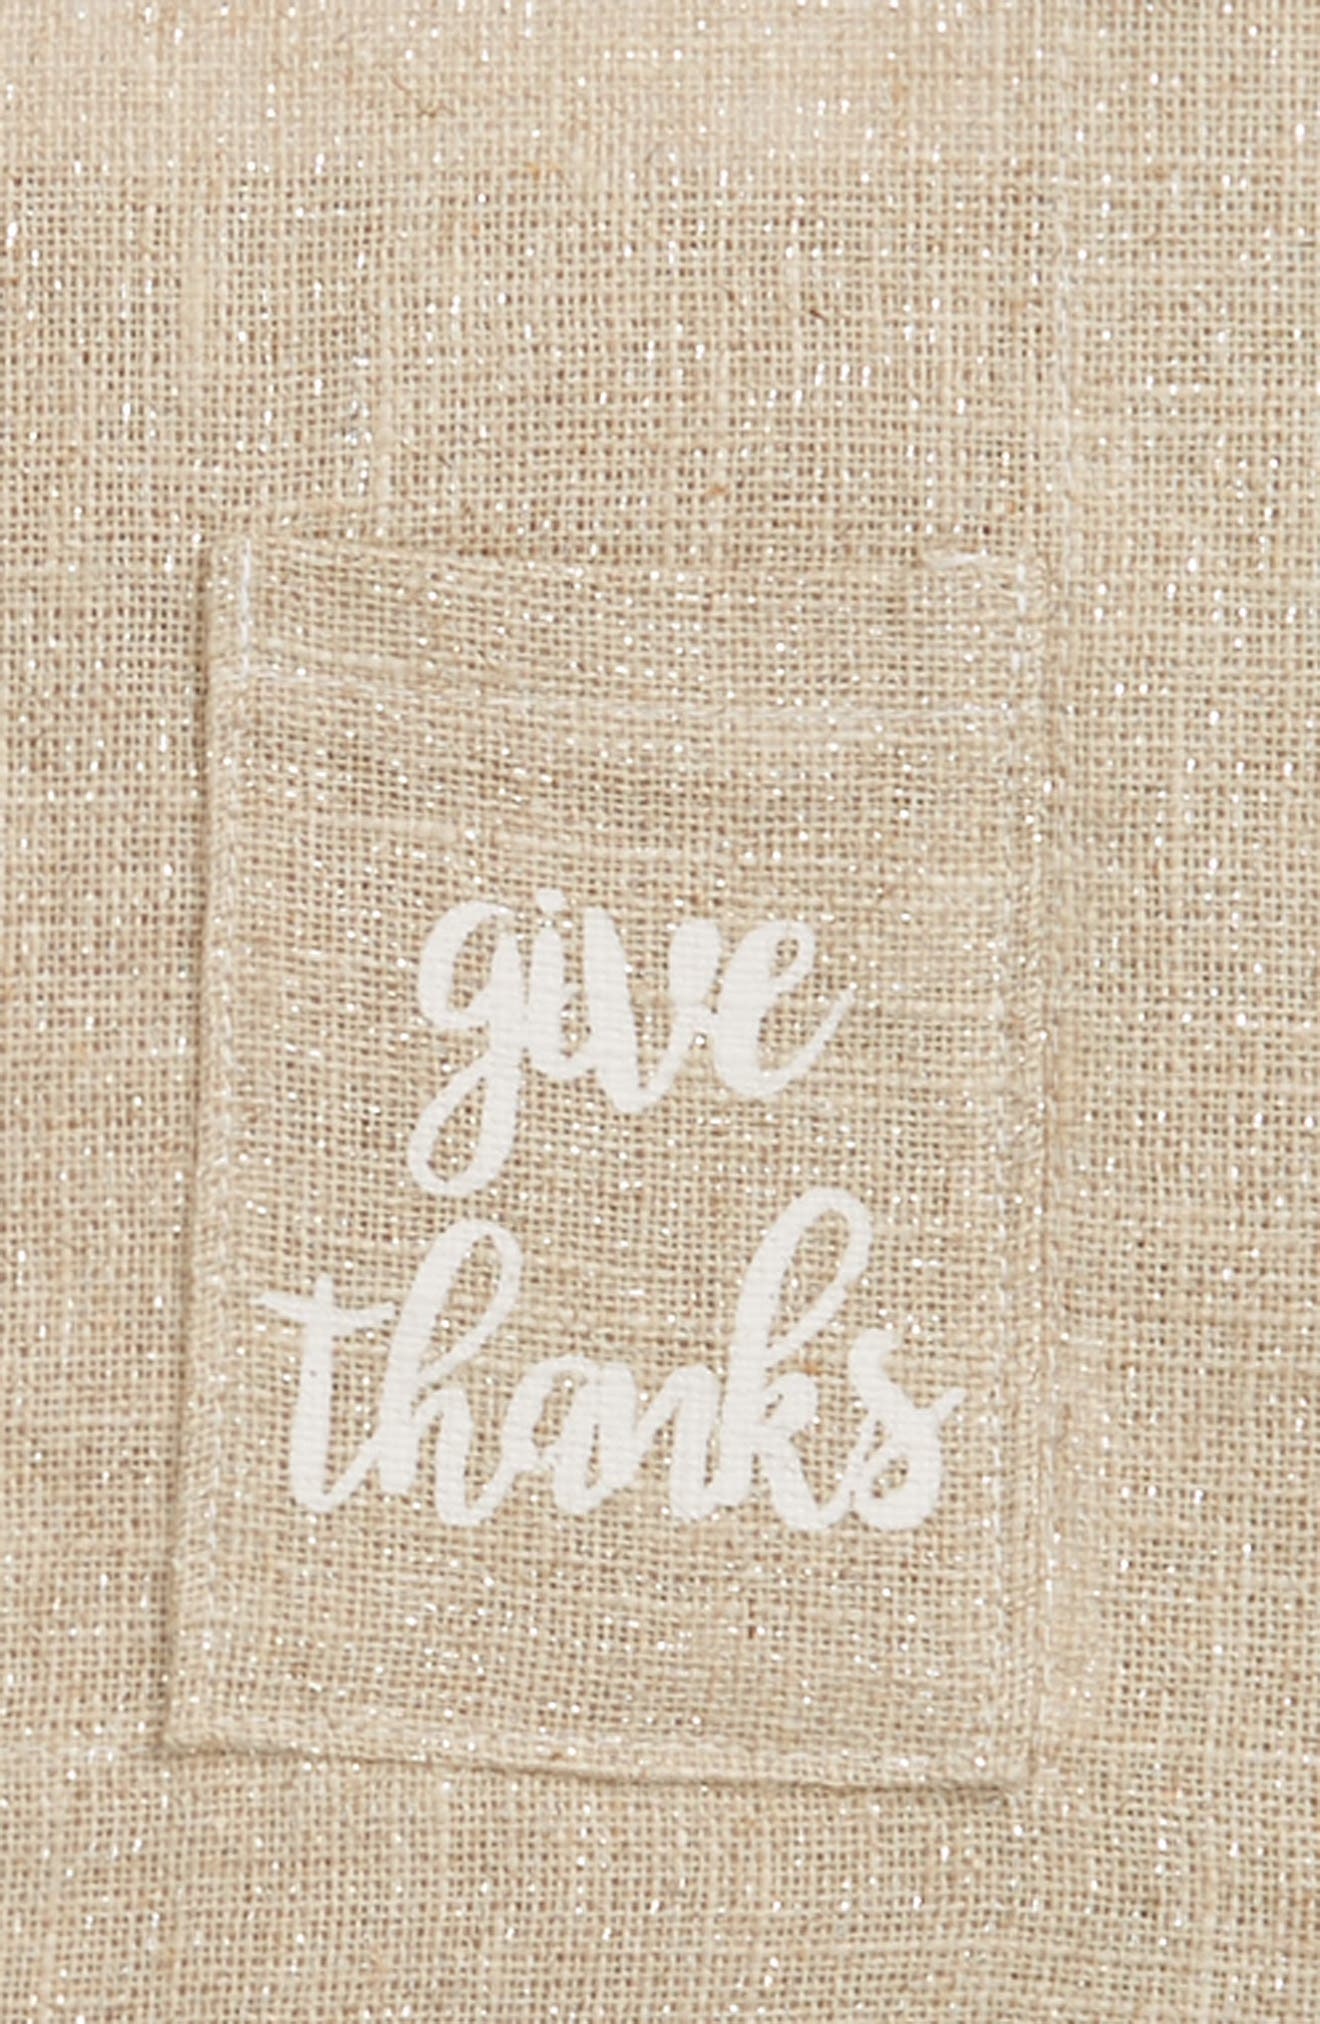 Give Thanks Set of 2 Placemats,                             Alternate thumbnail 2, color,                             250